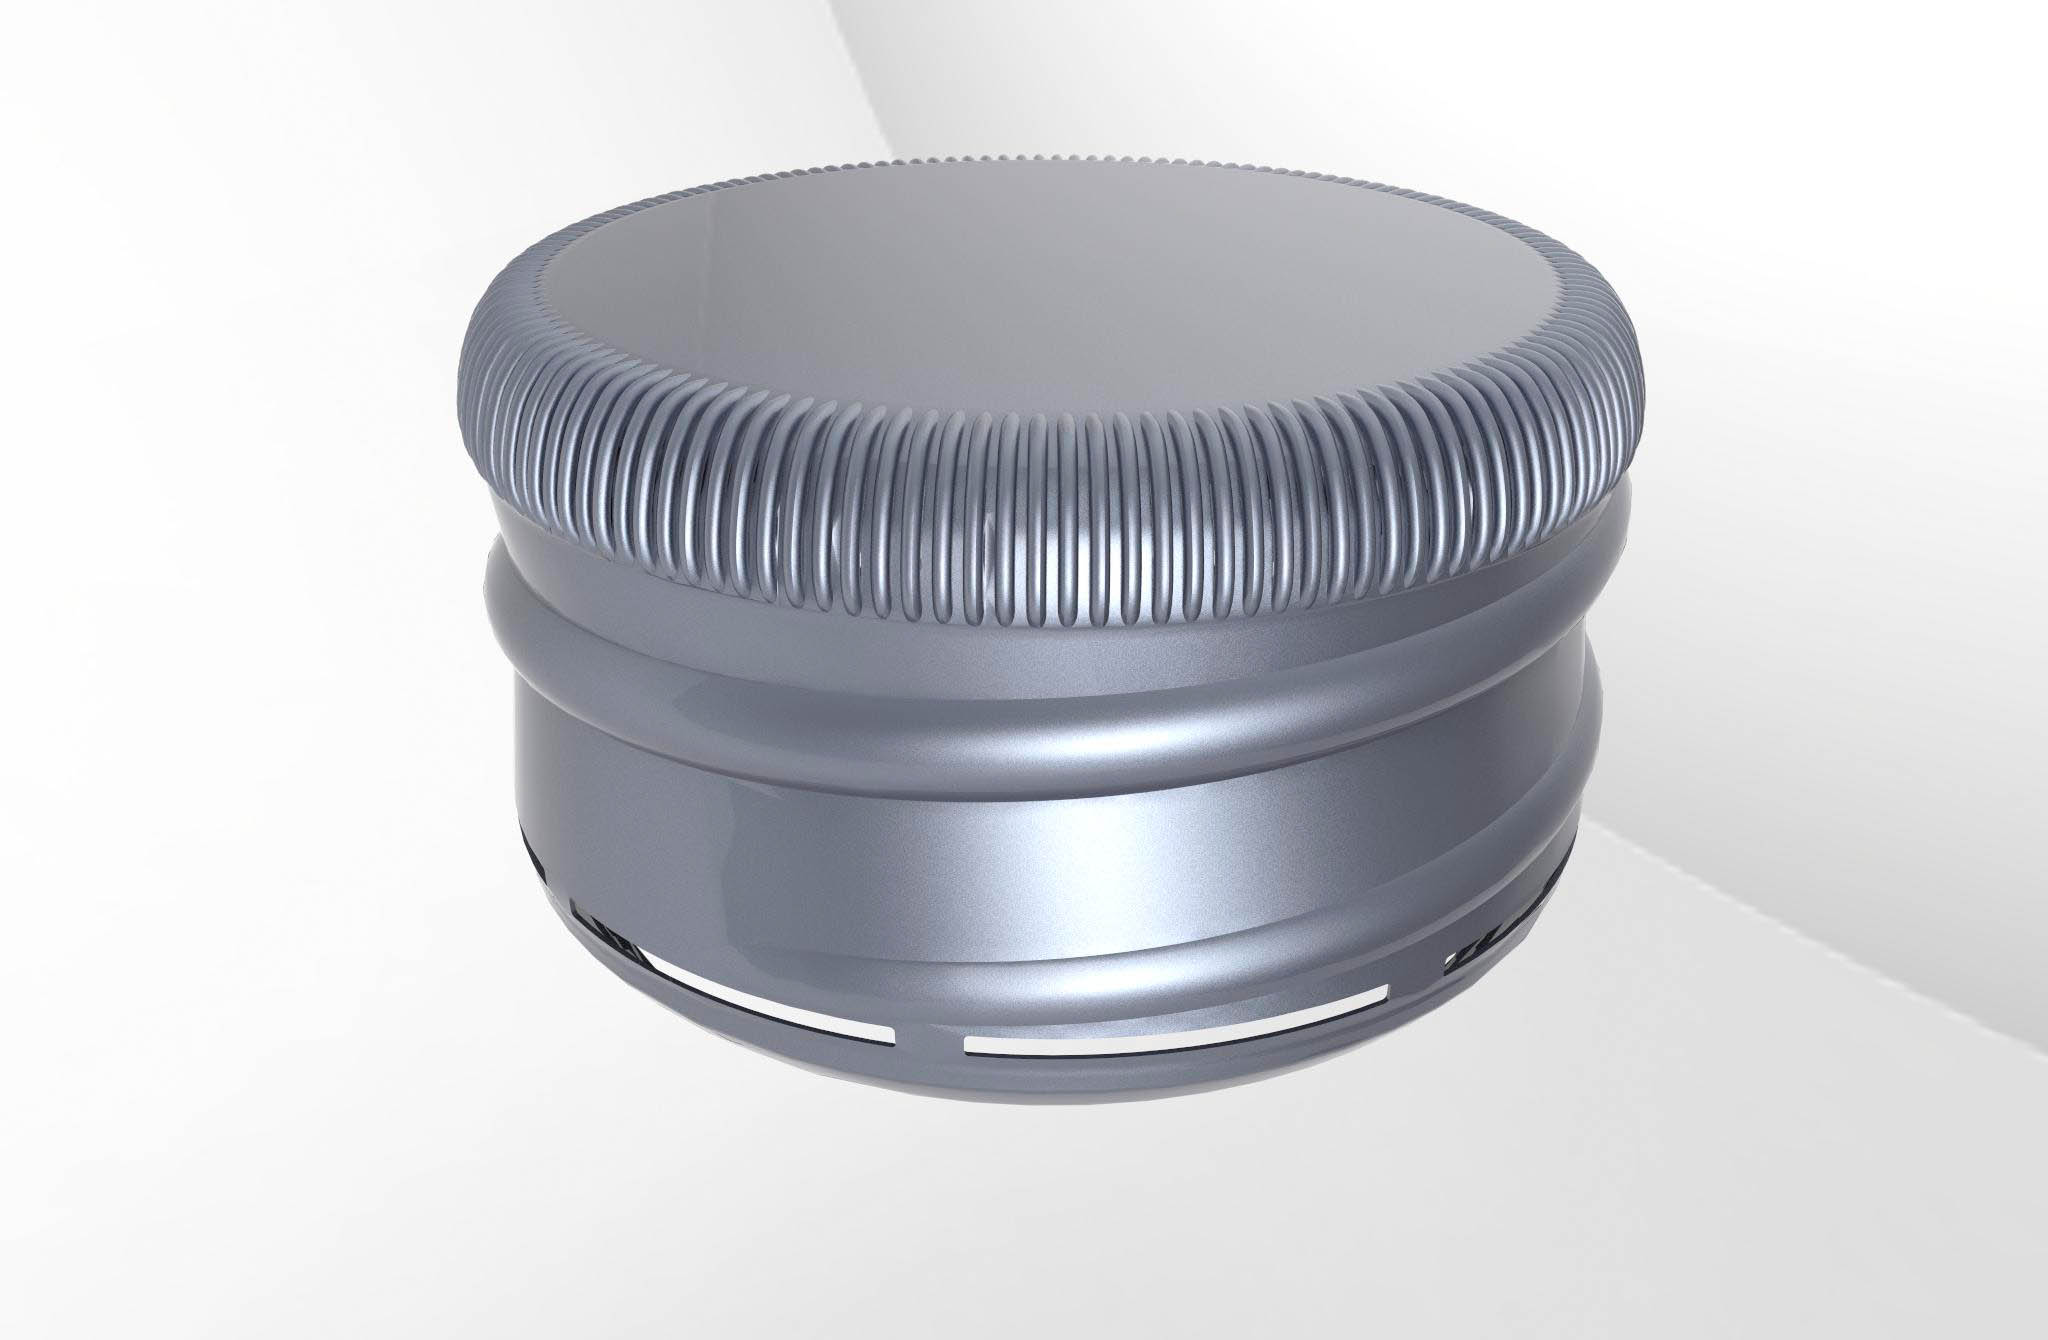 bottle screw cap 3d model 3ds max fbx 3dm obj 269434